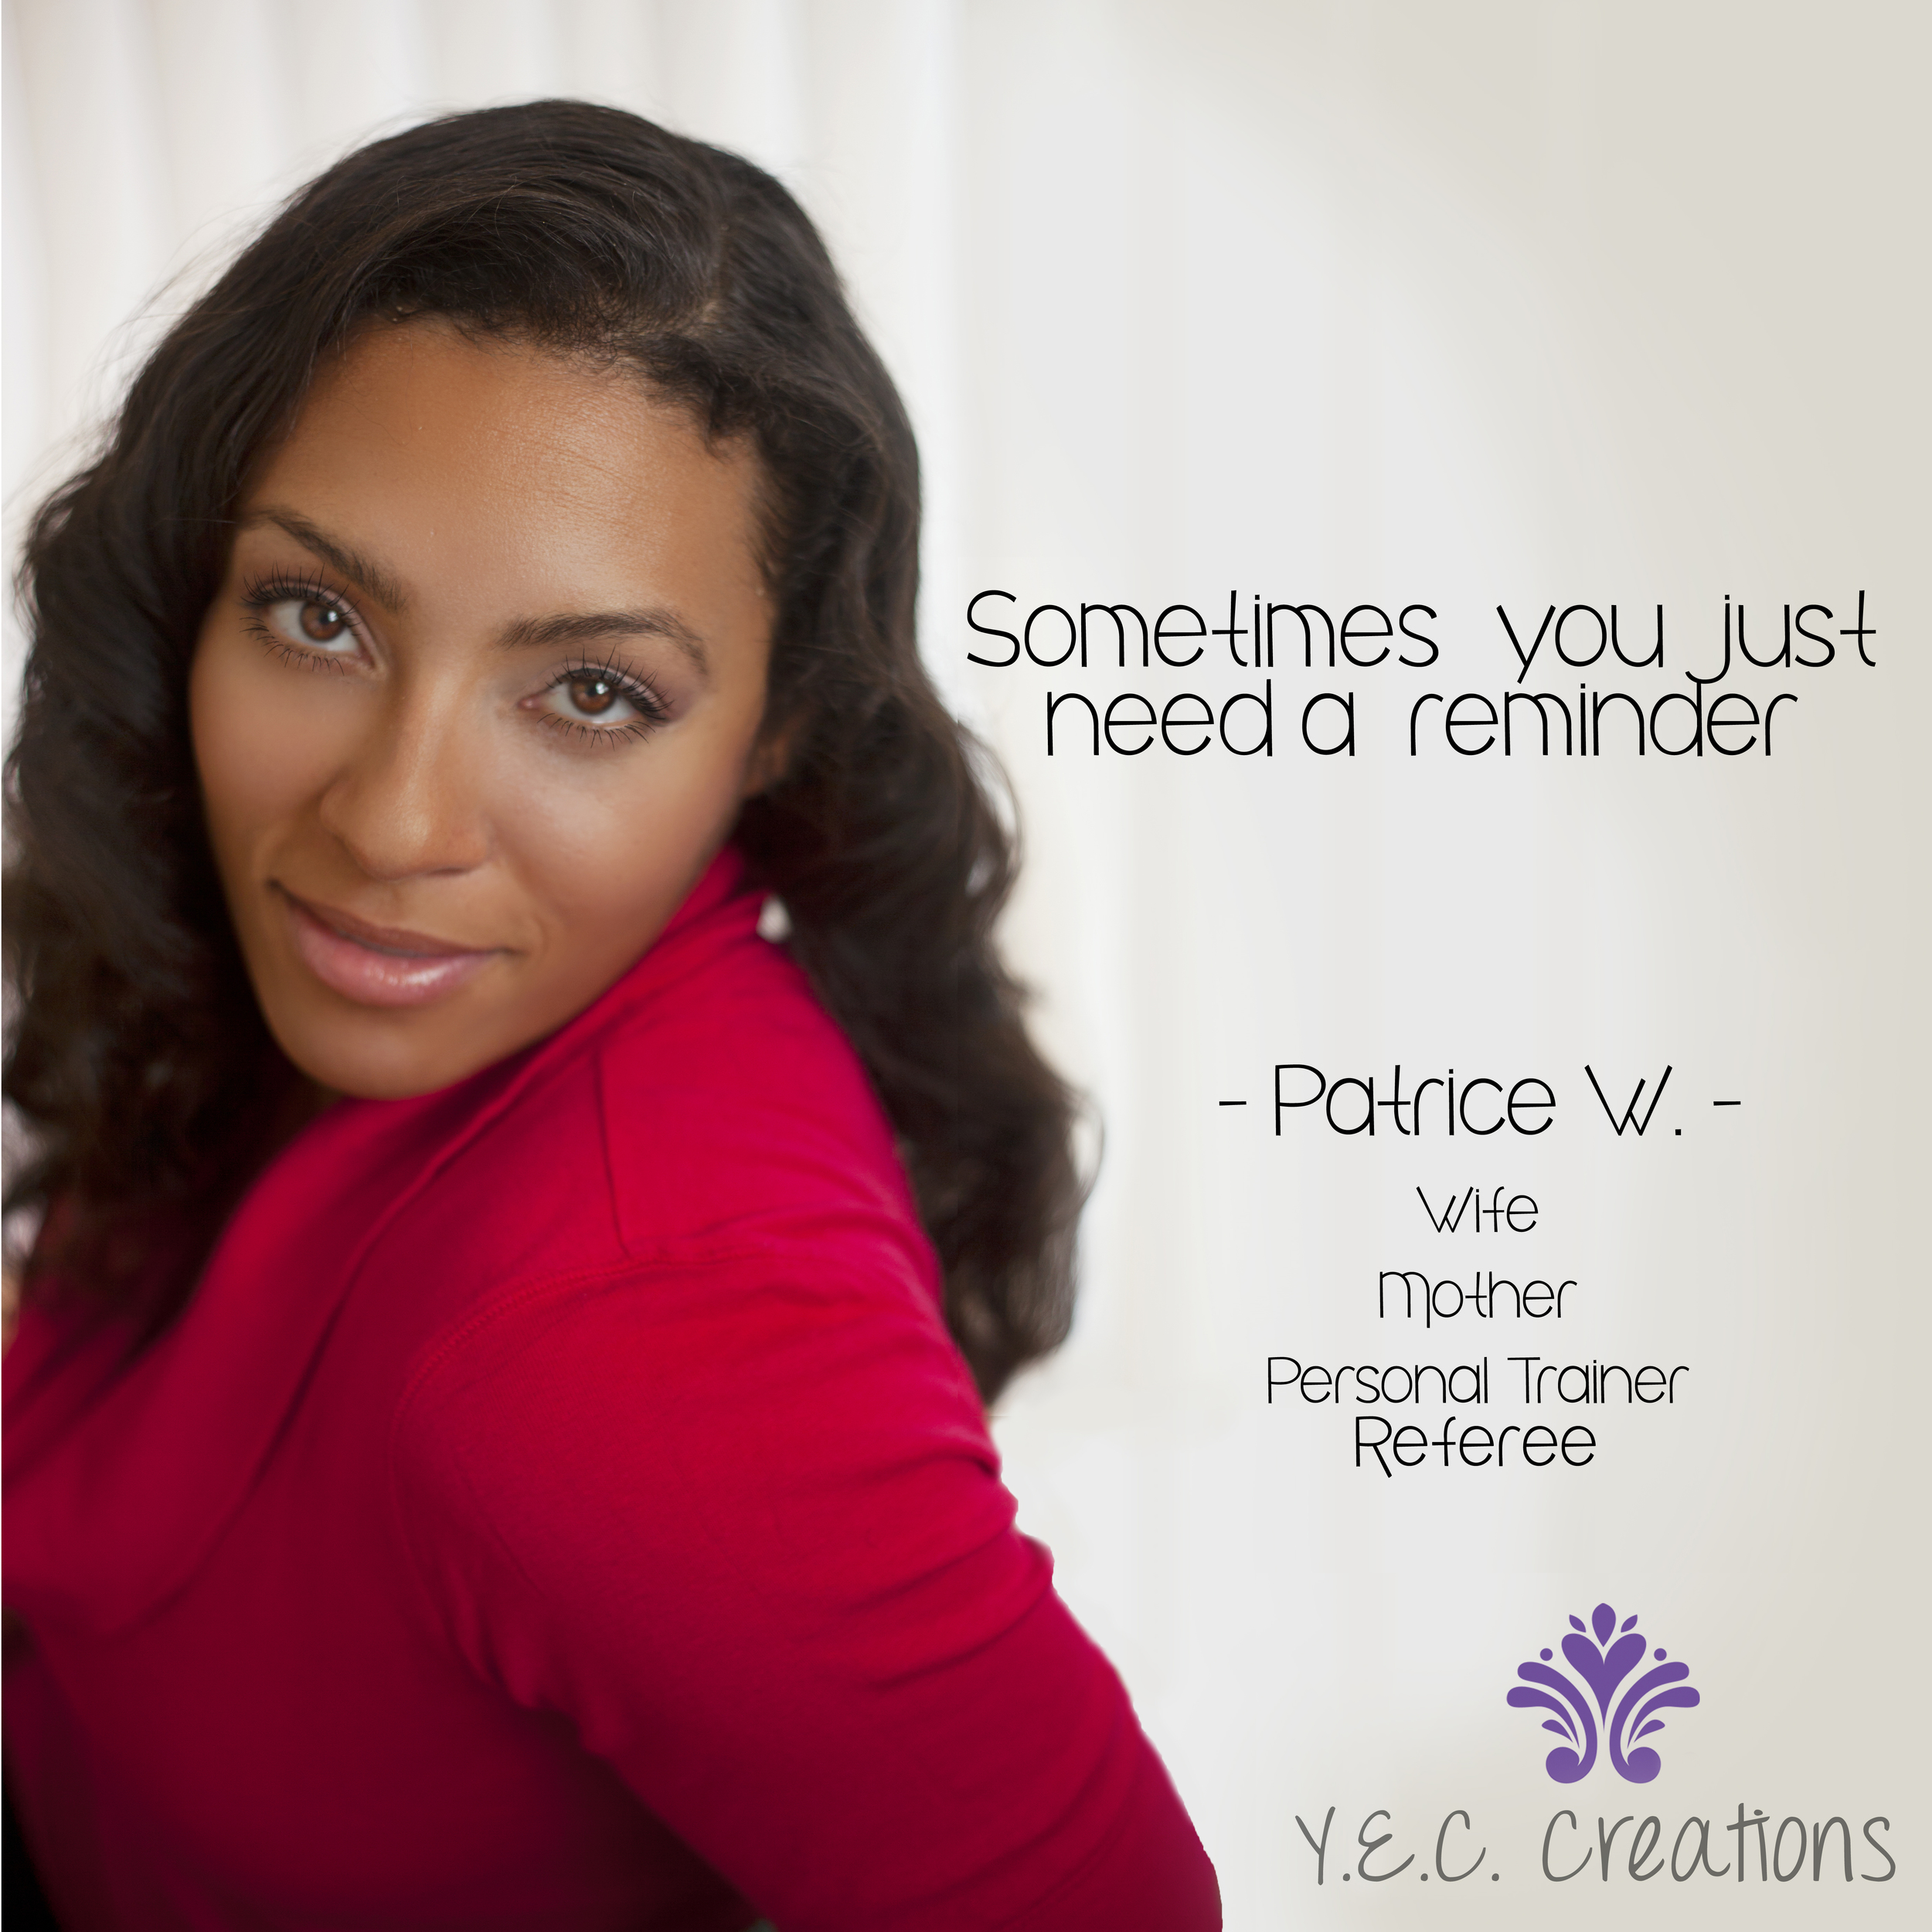 Patrice sometimes you just need a reminder